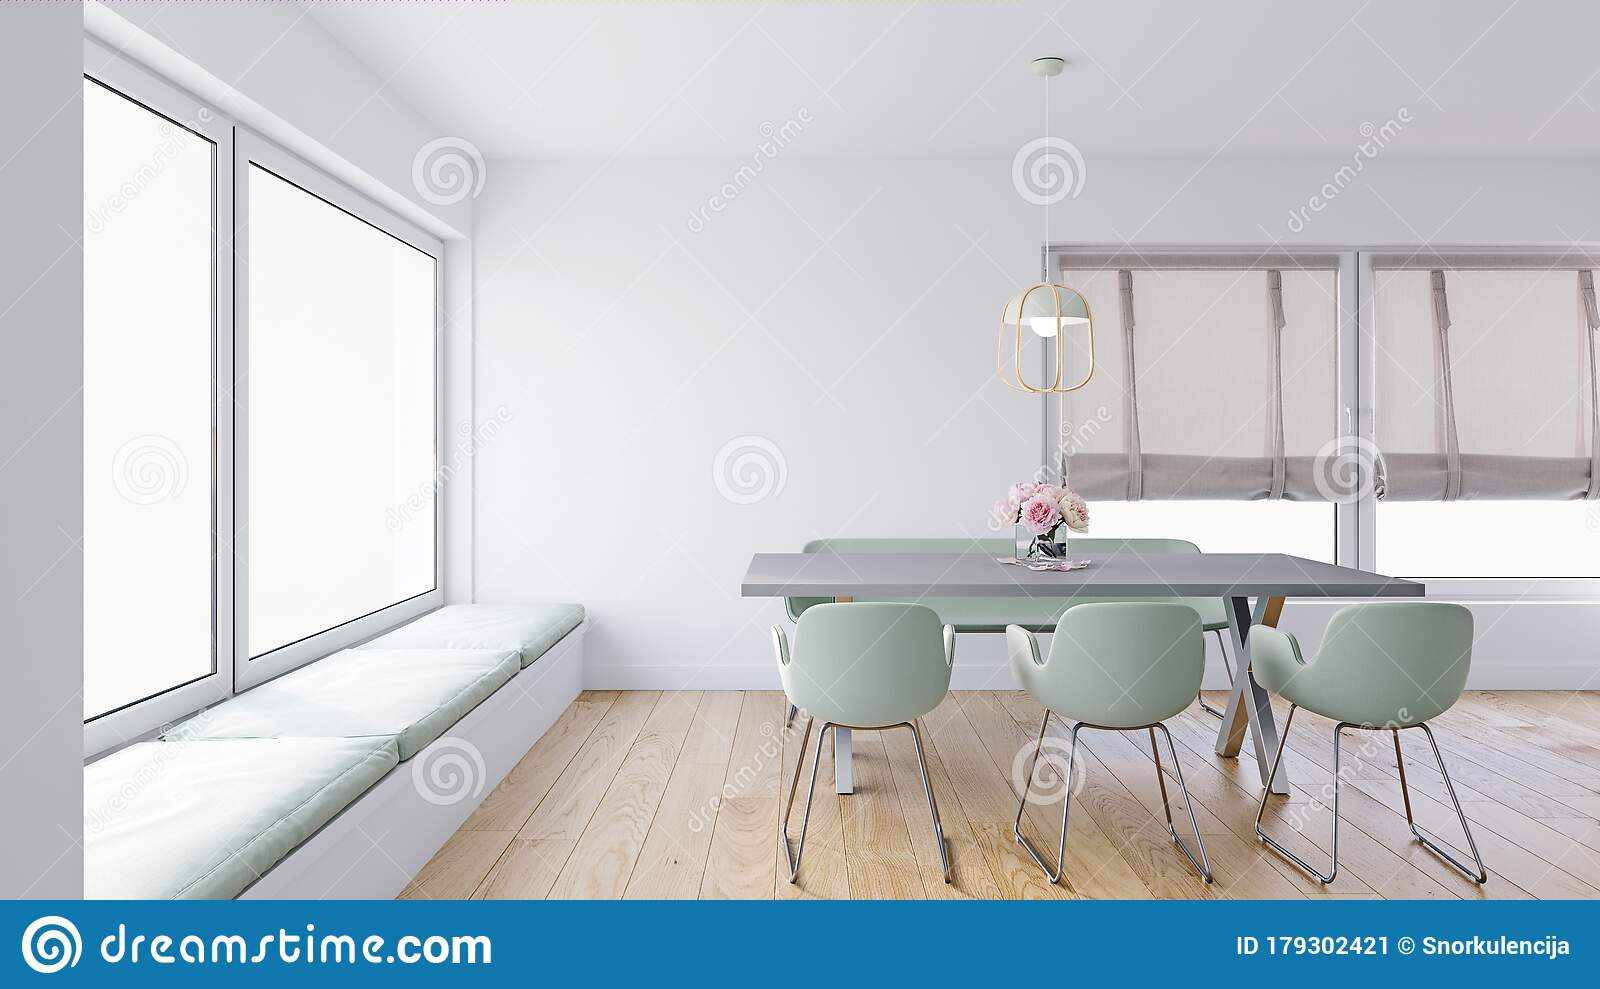 Modern Dining Room With Comfy Upholstered Window Seats Large Window Nook Roman Blinds And Sage Green Chairs Stock Illustration Illustration Of Rendering Backdrop 179302421